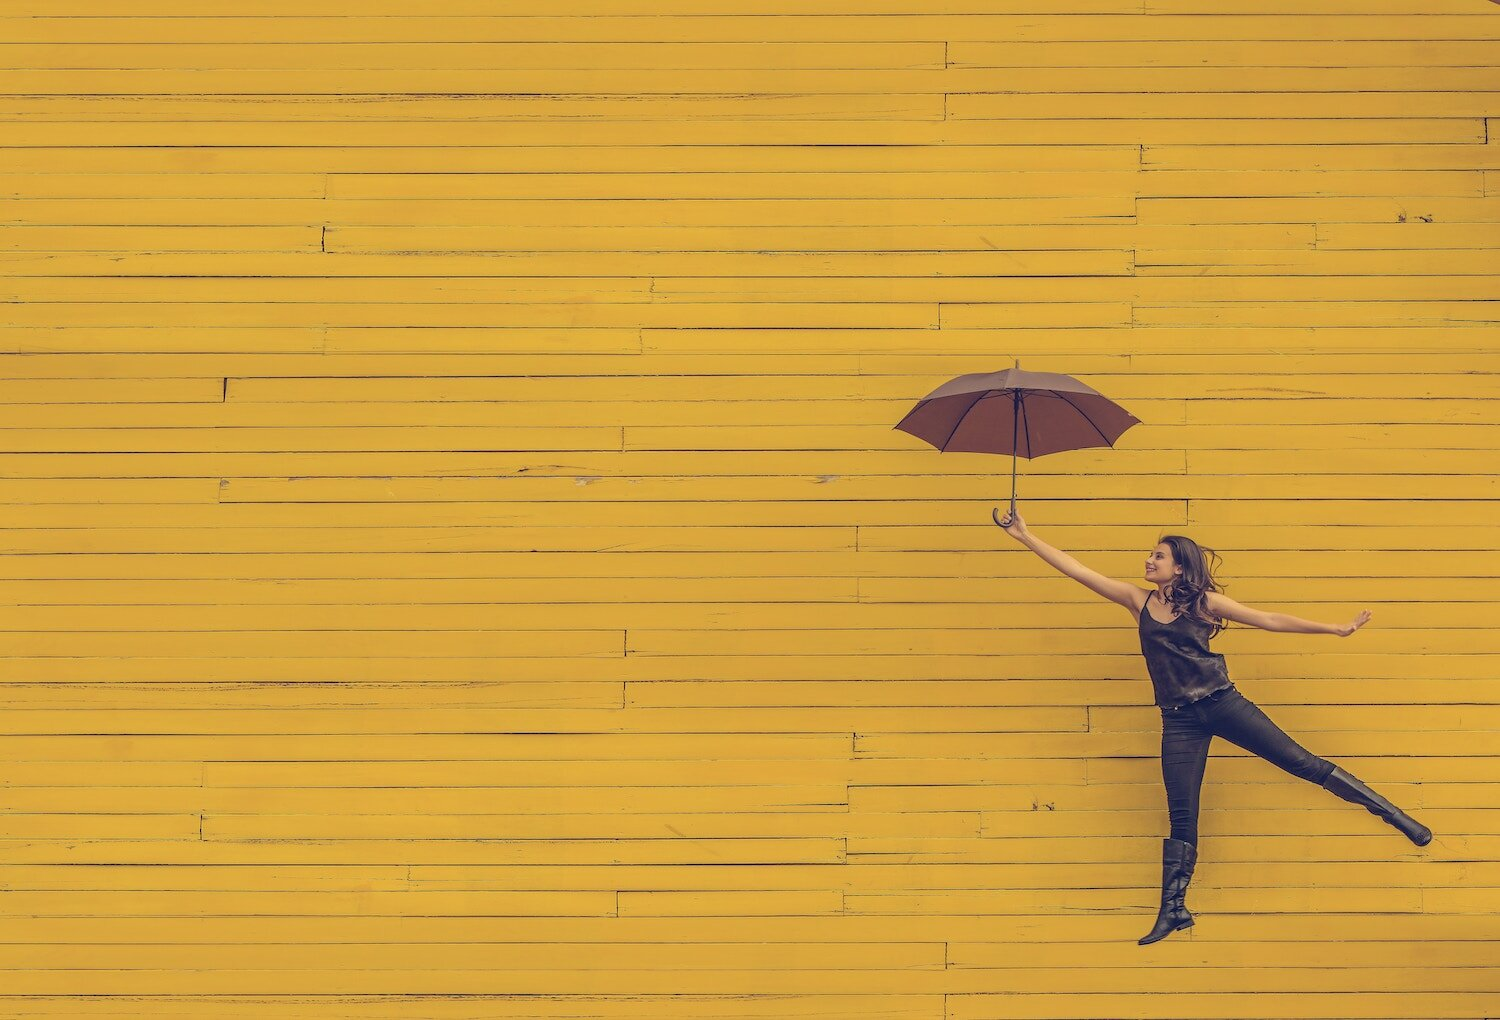 young woman floating in the air with umbrella againt yellow background.jpg